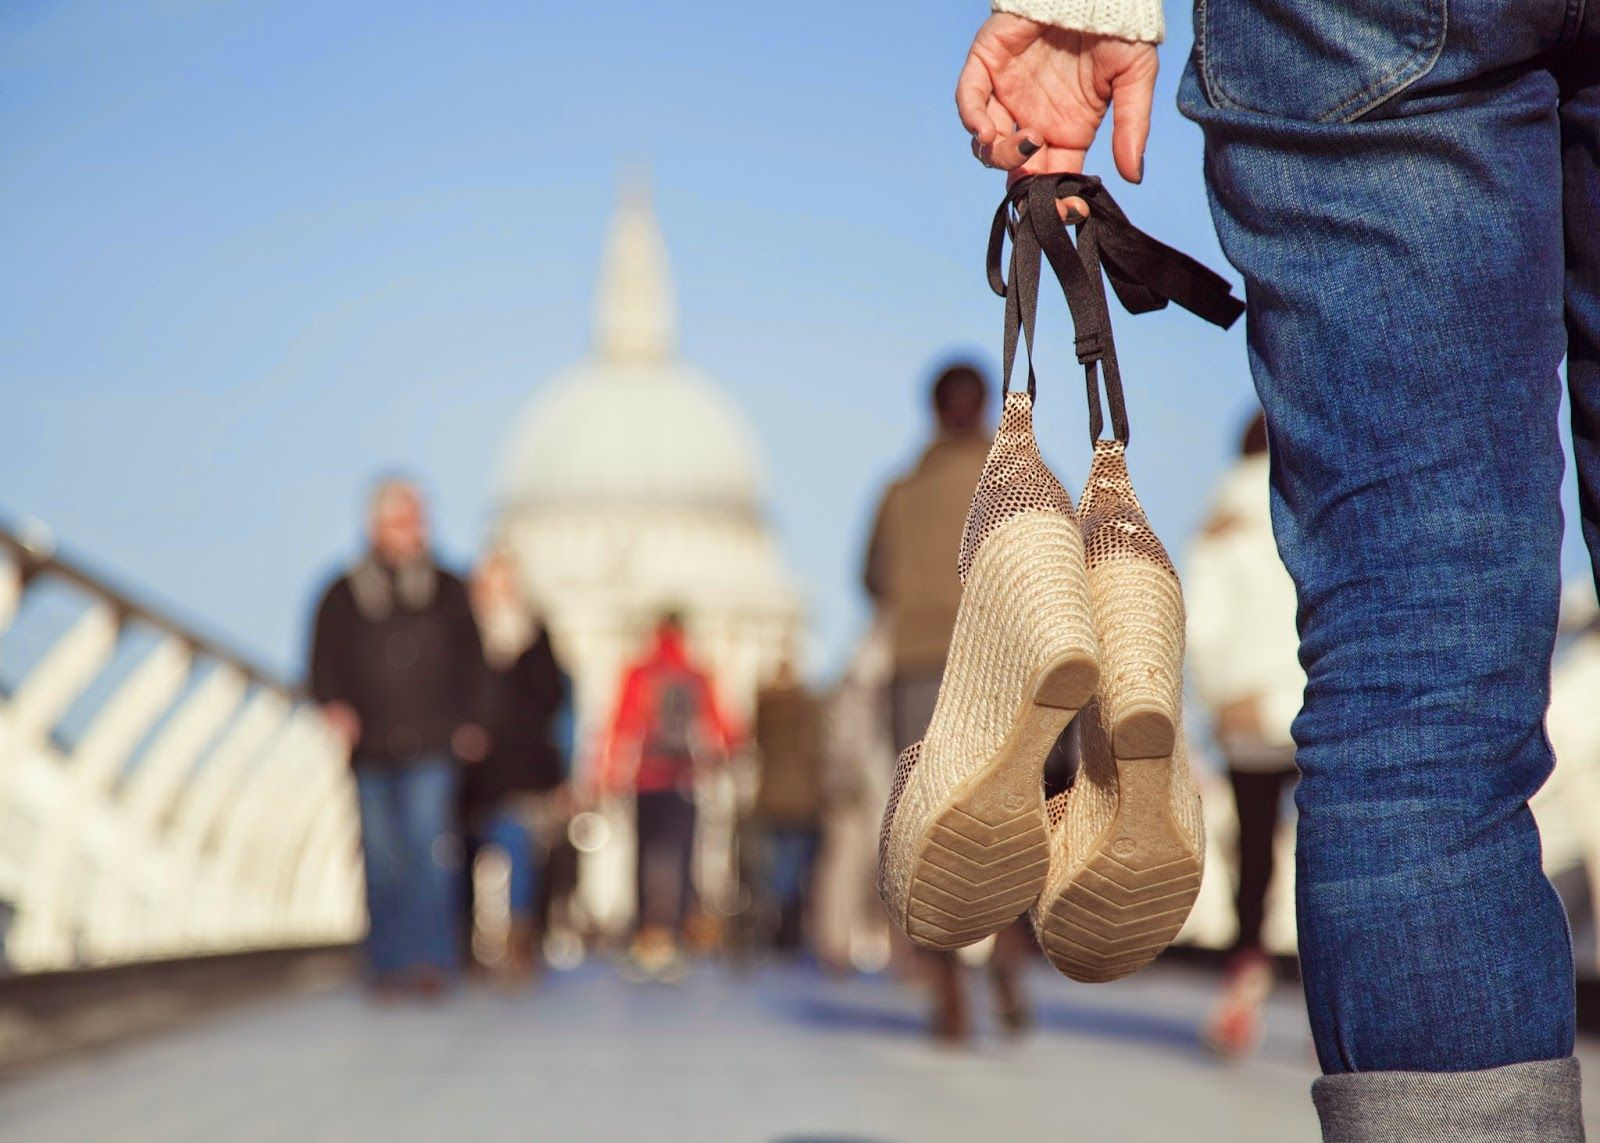 St Paul's and espadrilles by My name is Lolo